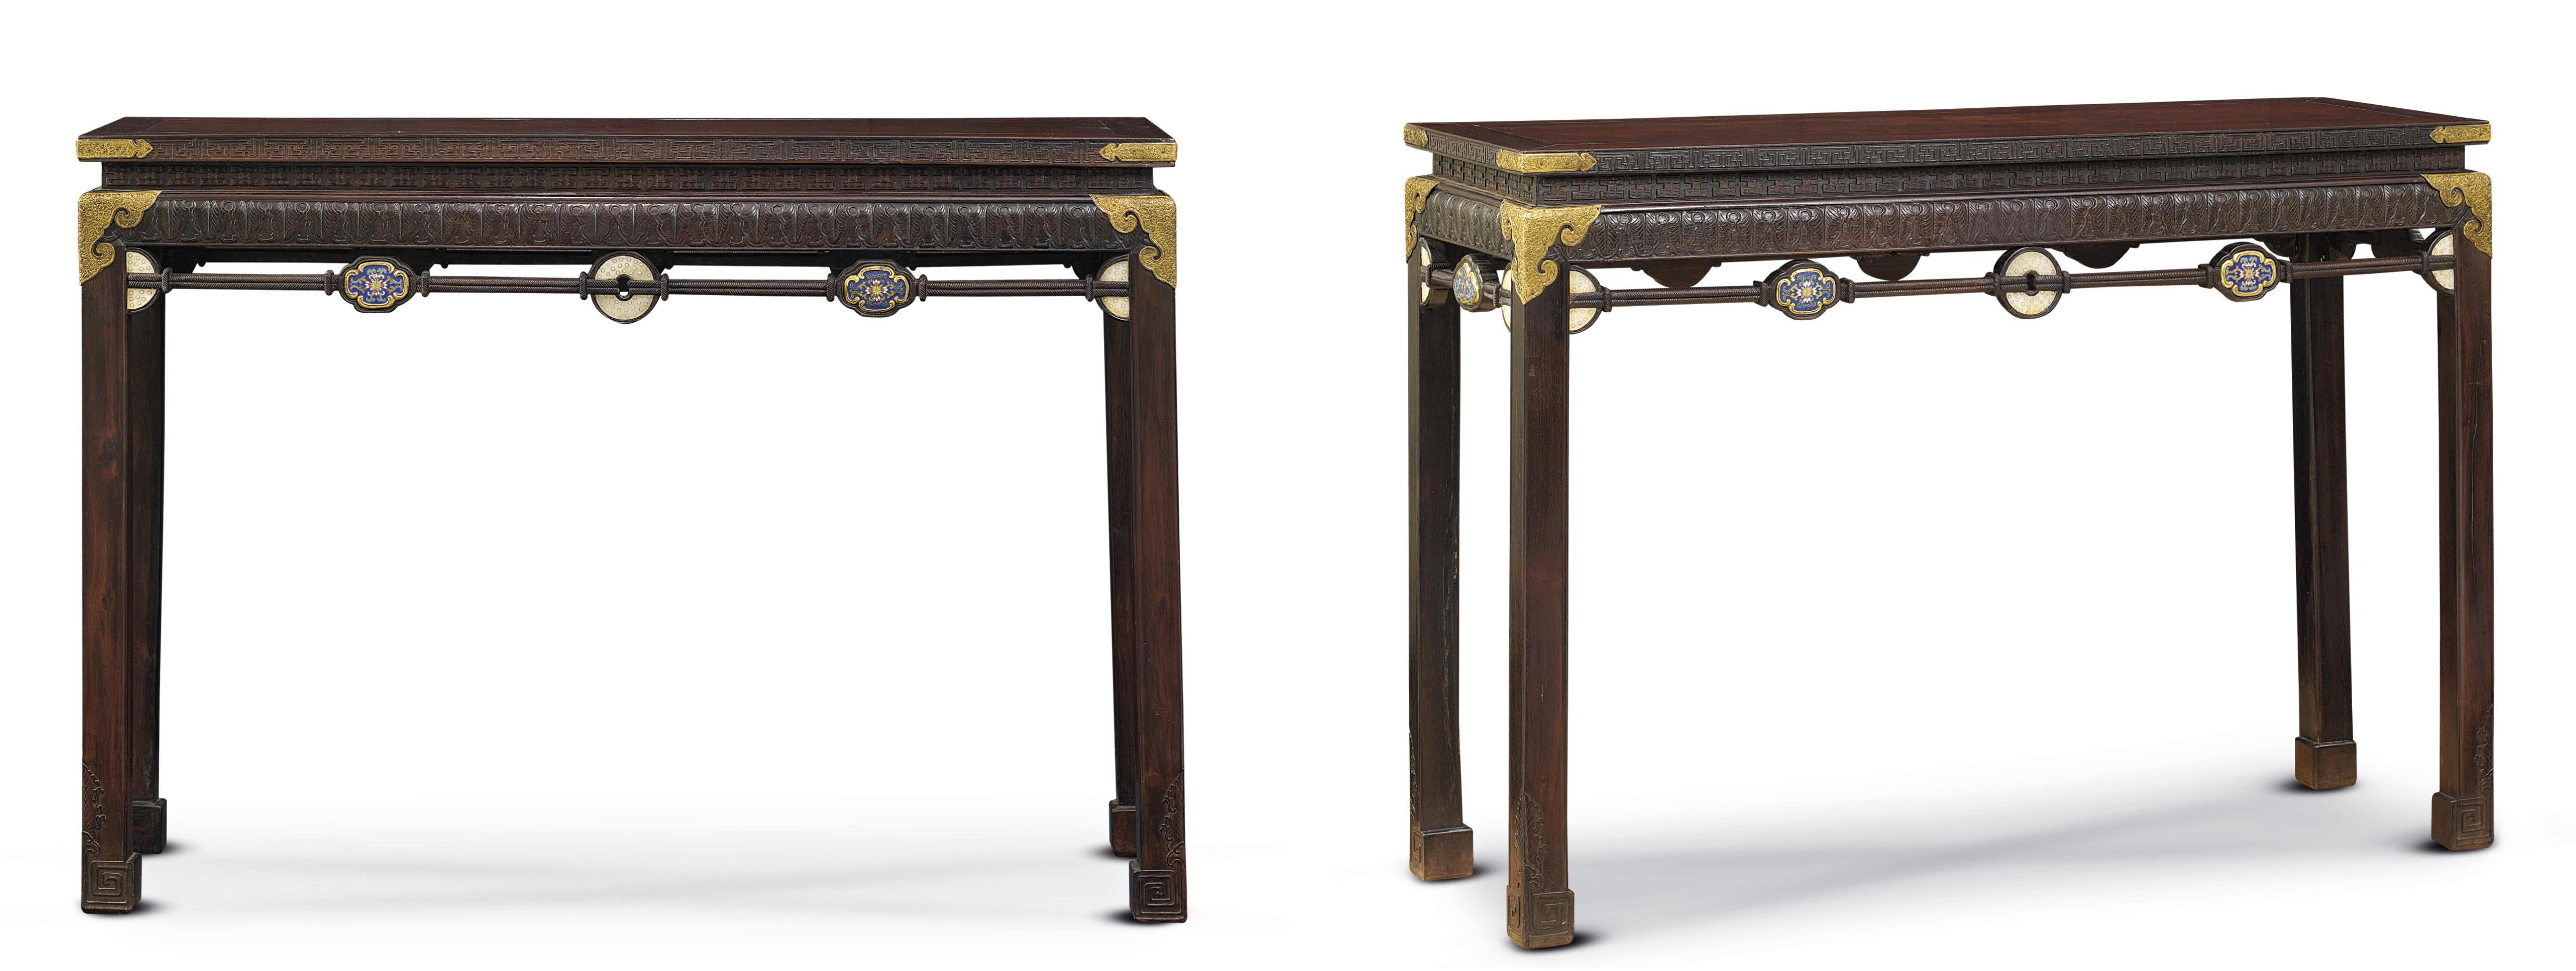 A VERY RARE PAIR OF IMPERIAL EMBELLISHED HARDWOOD CORNER-LEG TABLES